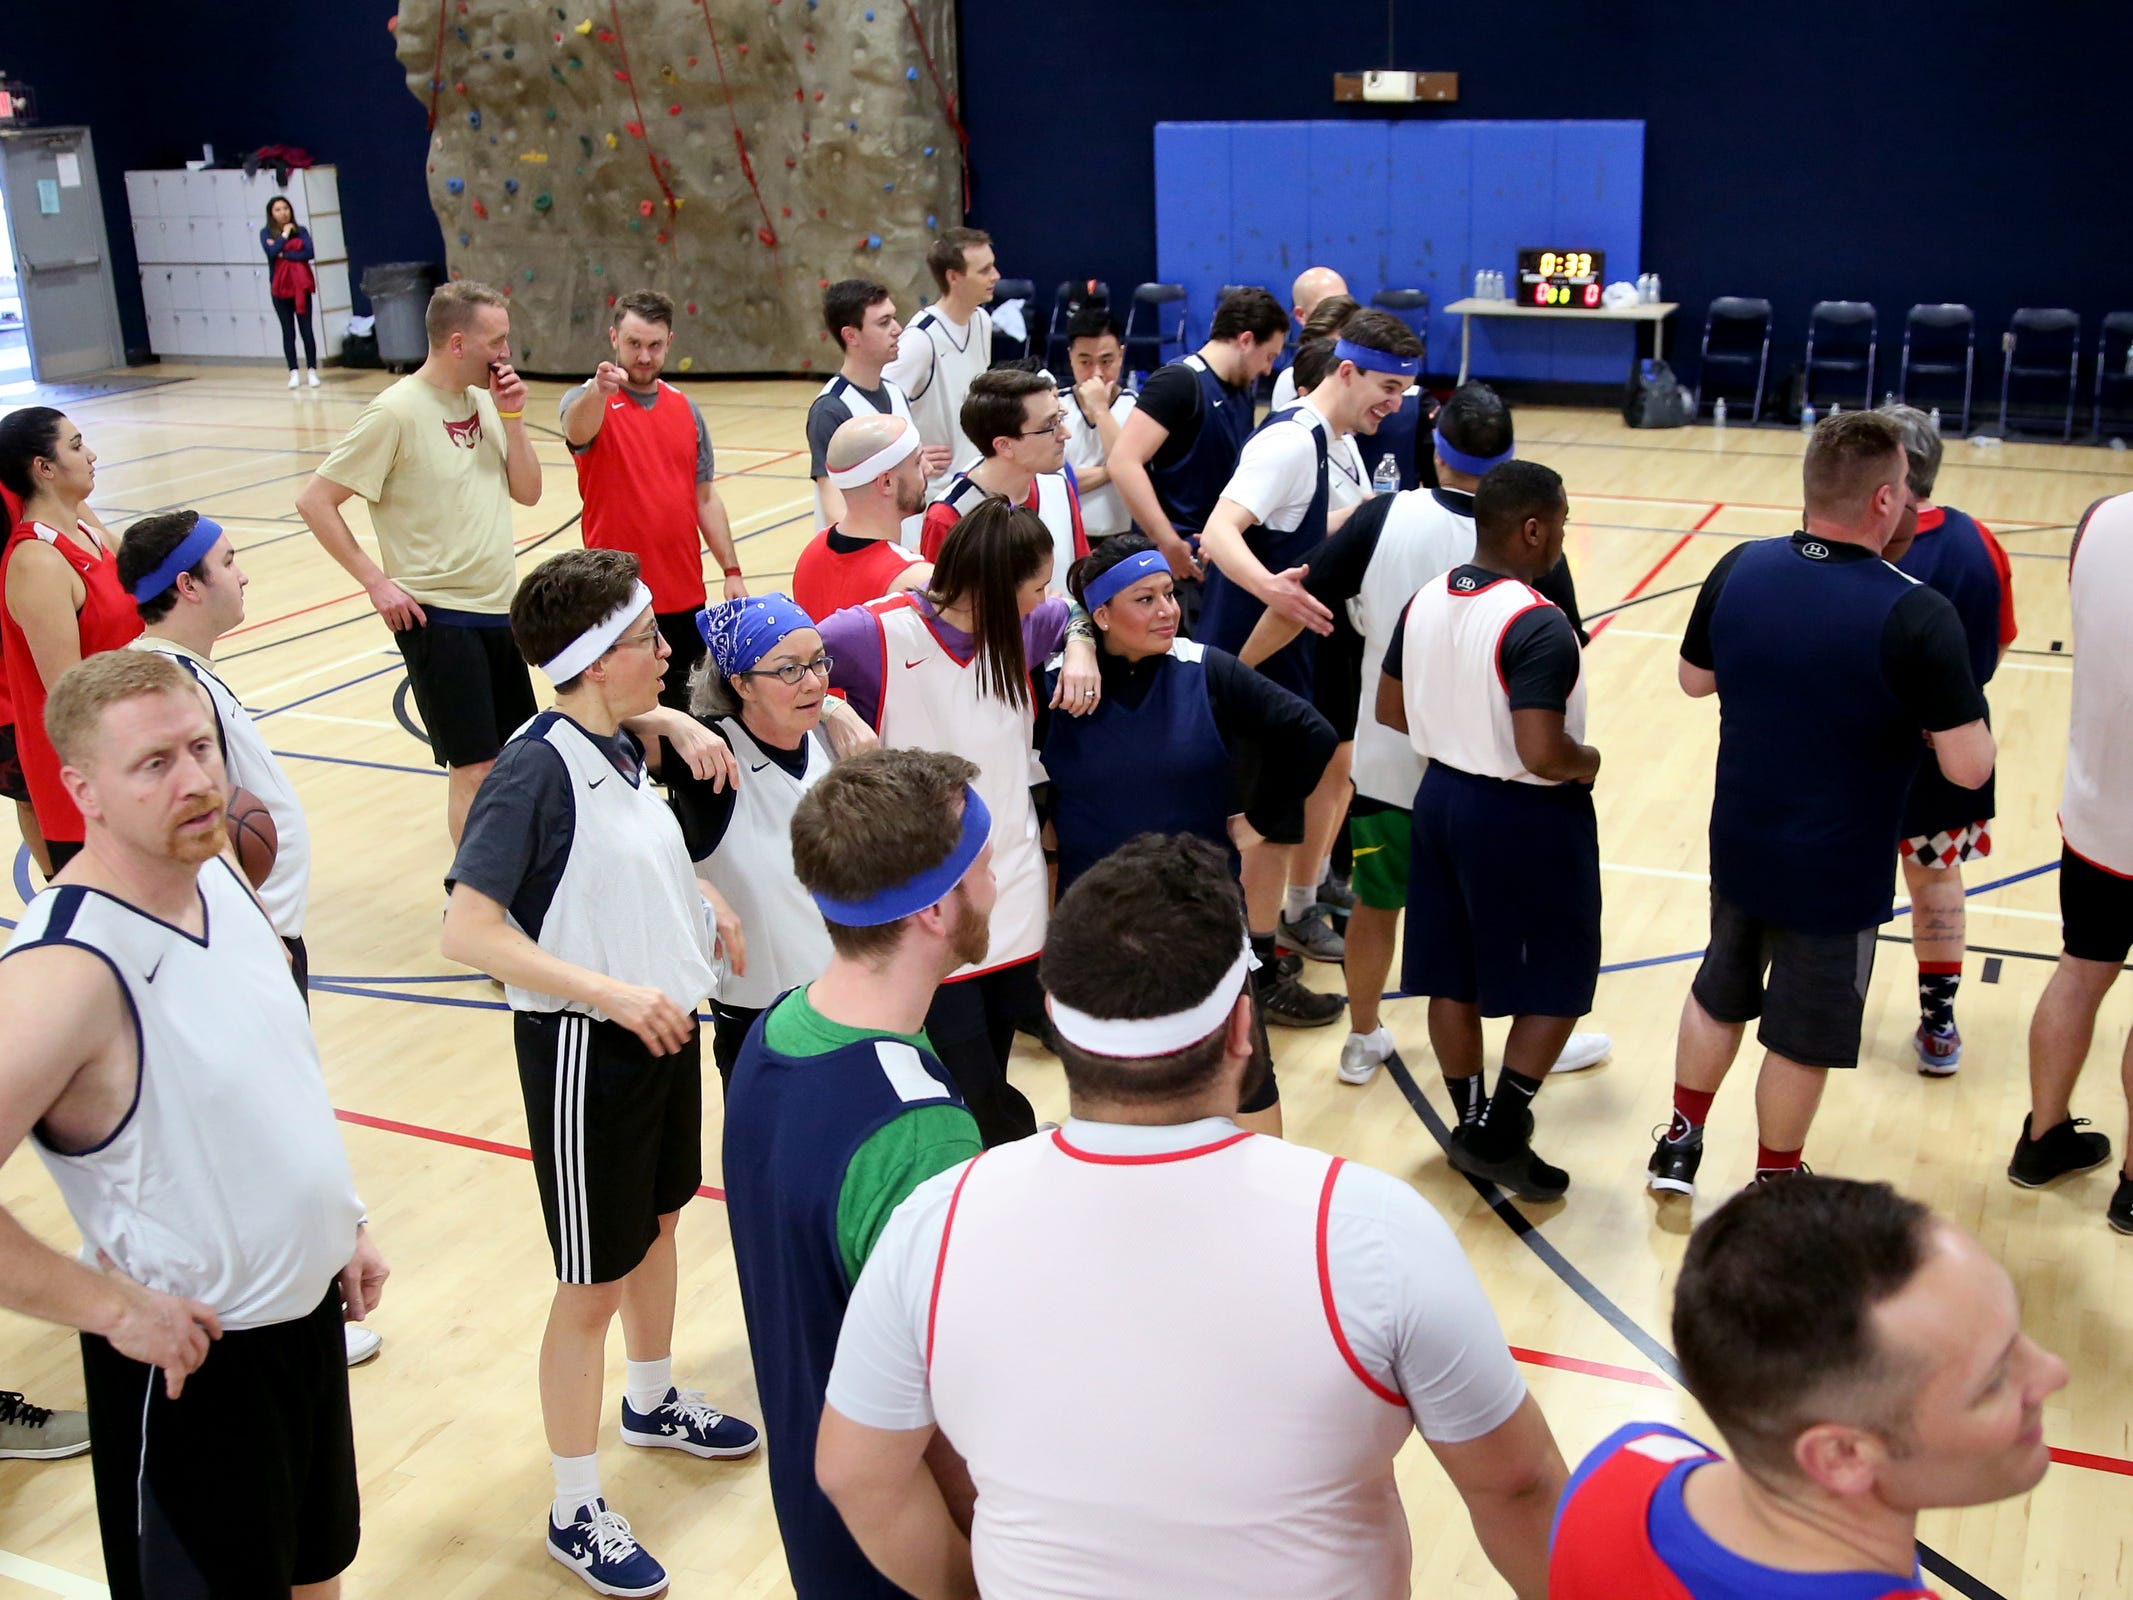 Players gather before the start of the second annual House vs. Senate charity basketball tournament at the Boys & Girls Club in Salem on March 13, 2019. The tournament raised more than $10,000 for the Oregon Alliance of Boys & Girls Clubs.